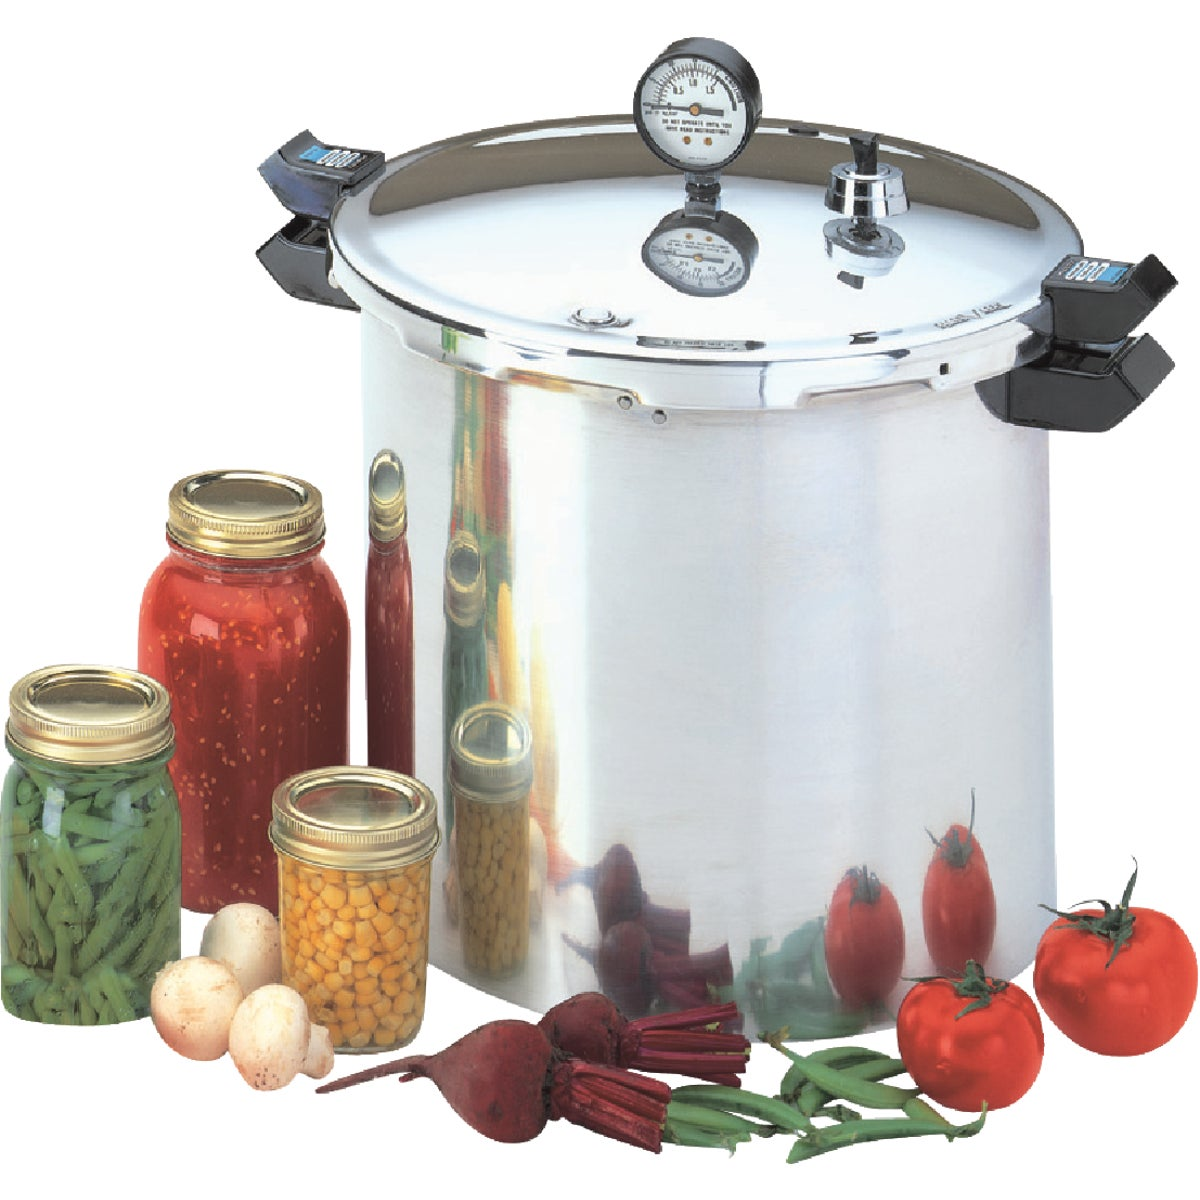 23QT PRESR COOKER/CANNER - 01781 by National Presto Ind